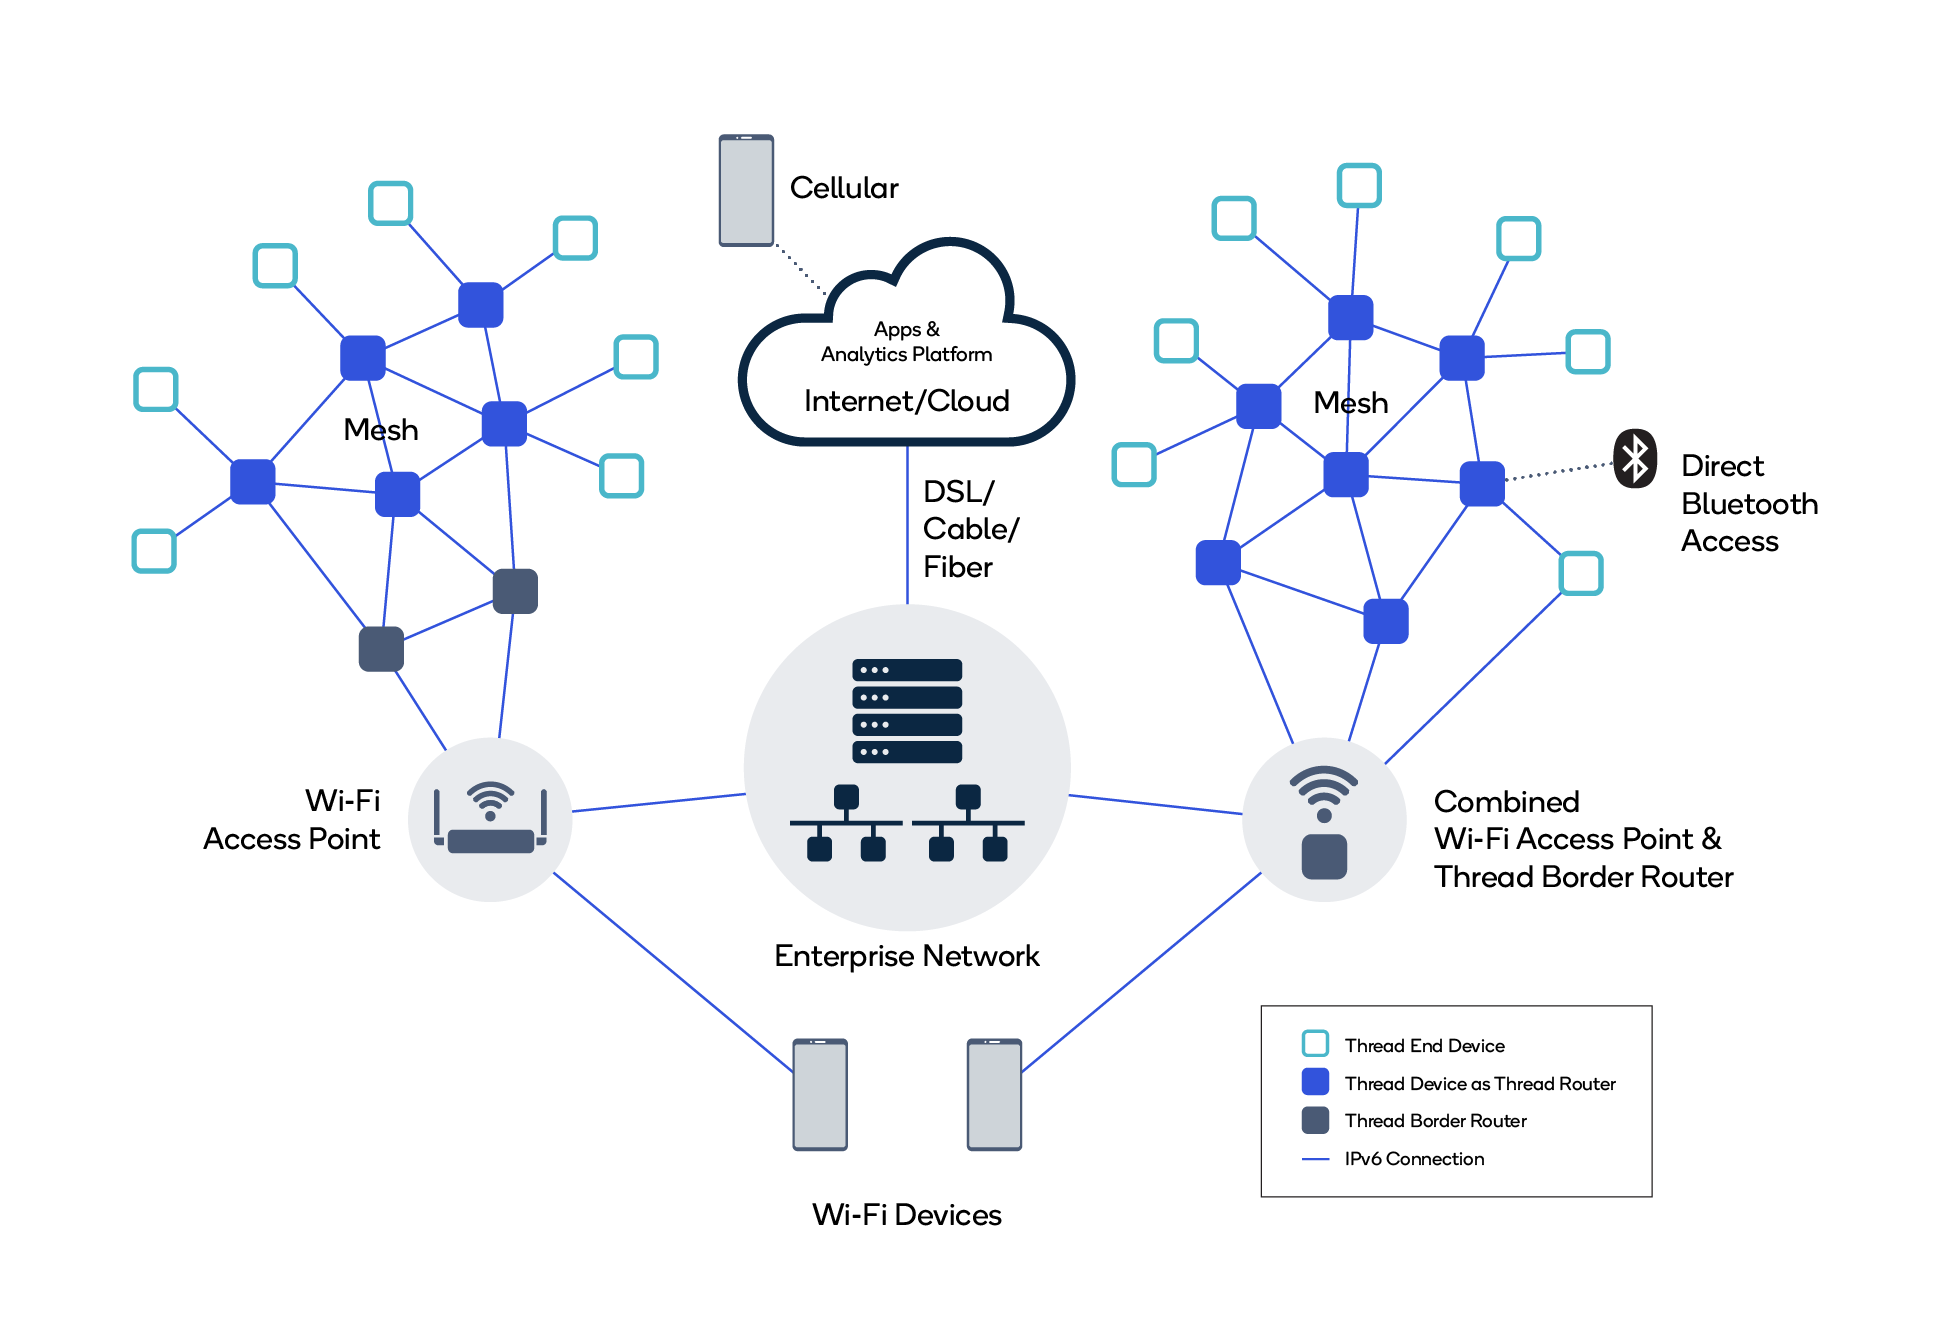 Overview of the Thread Network Architecture